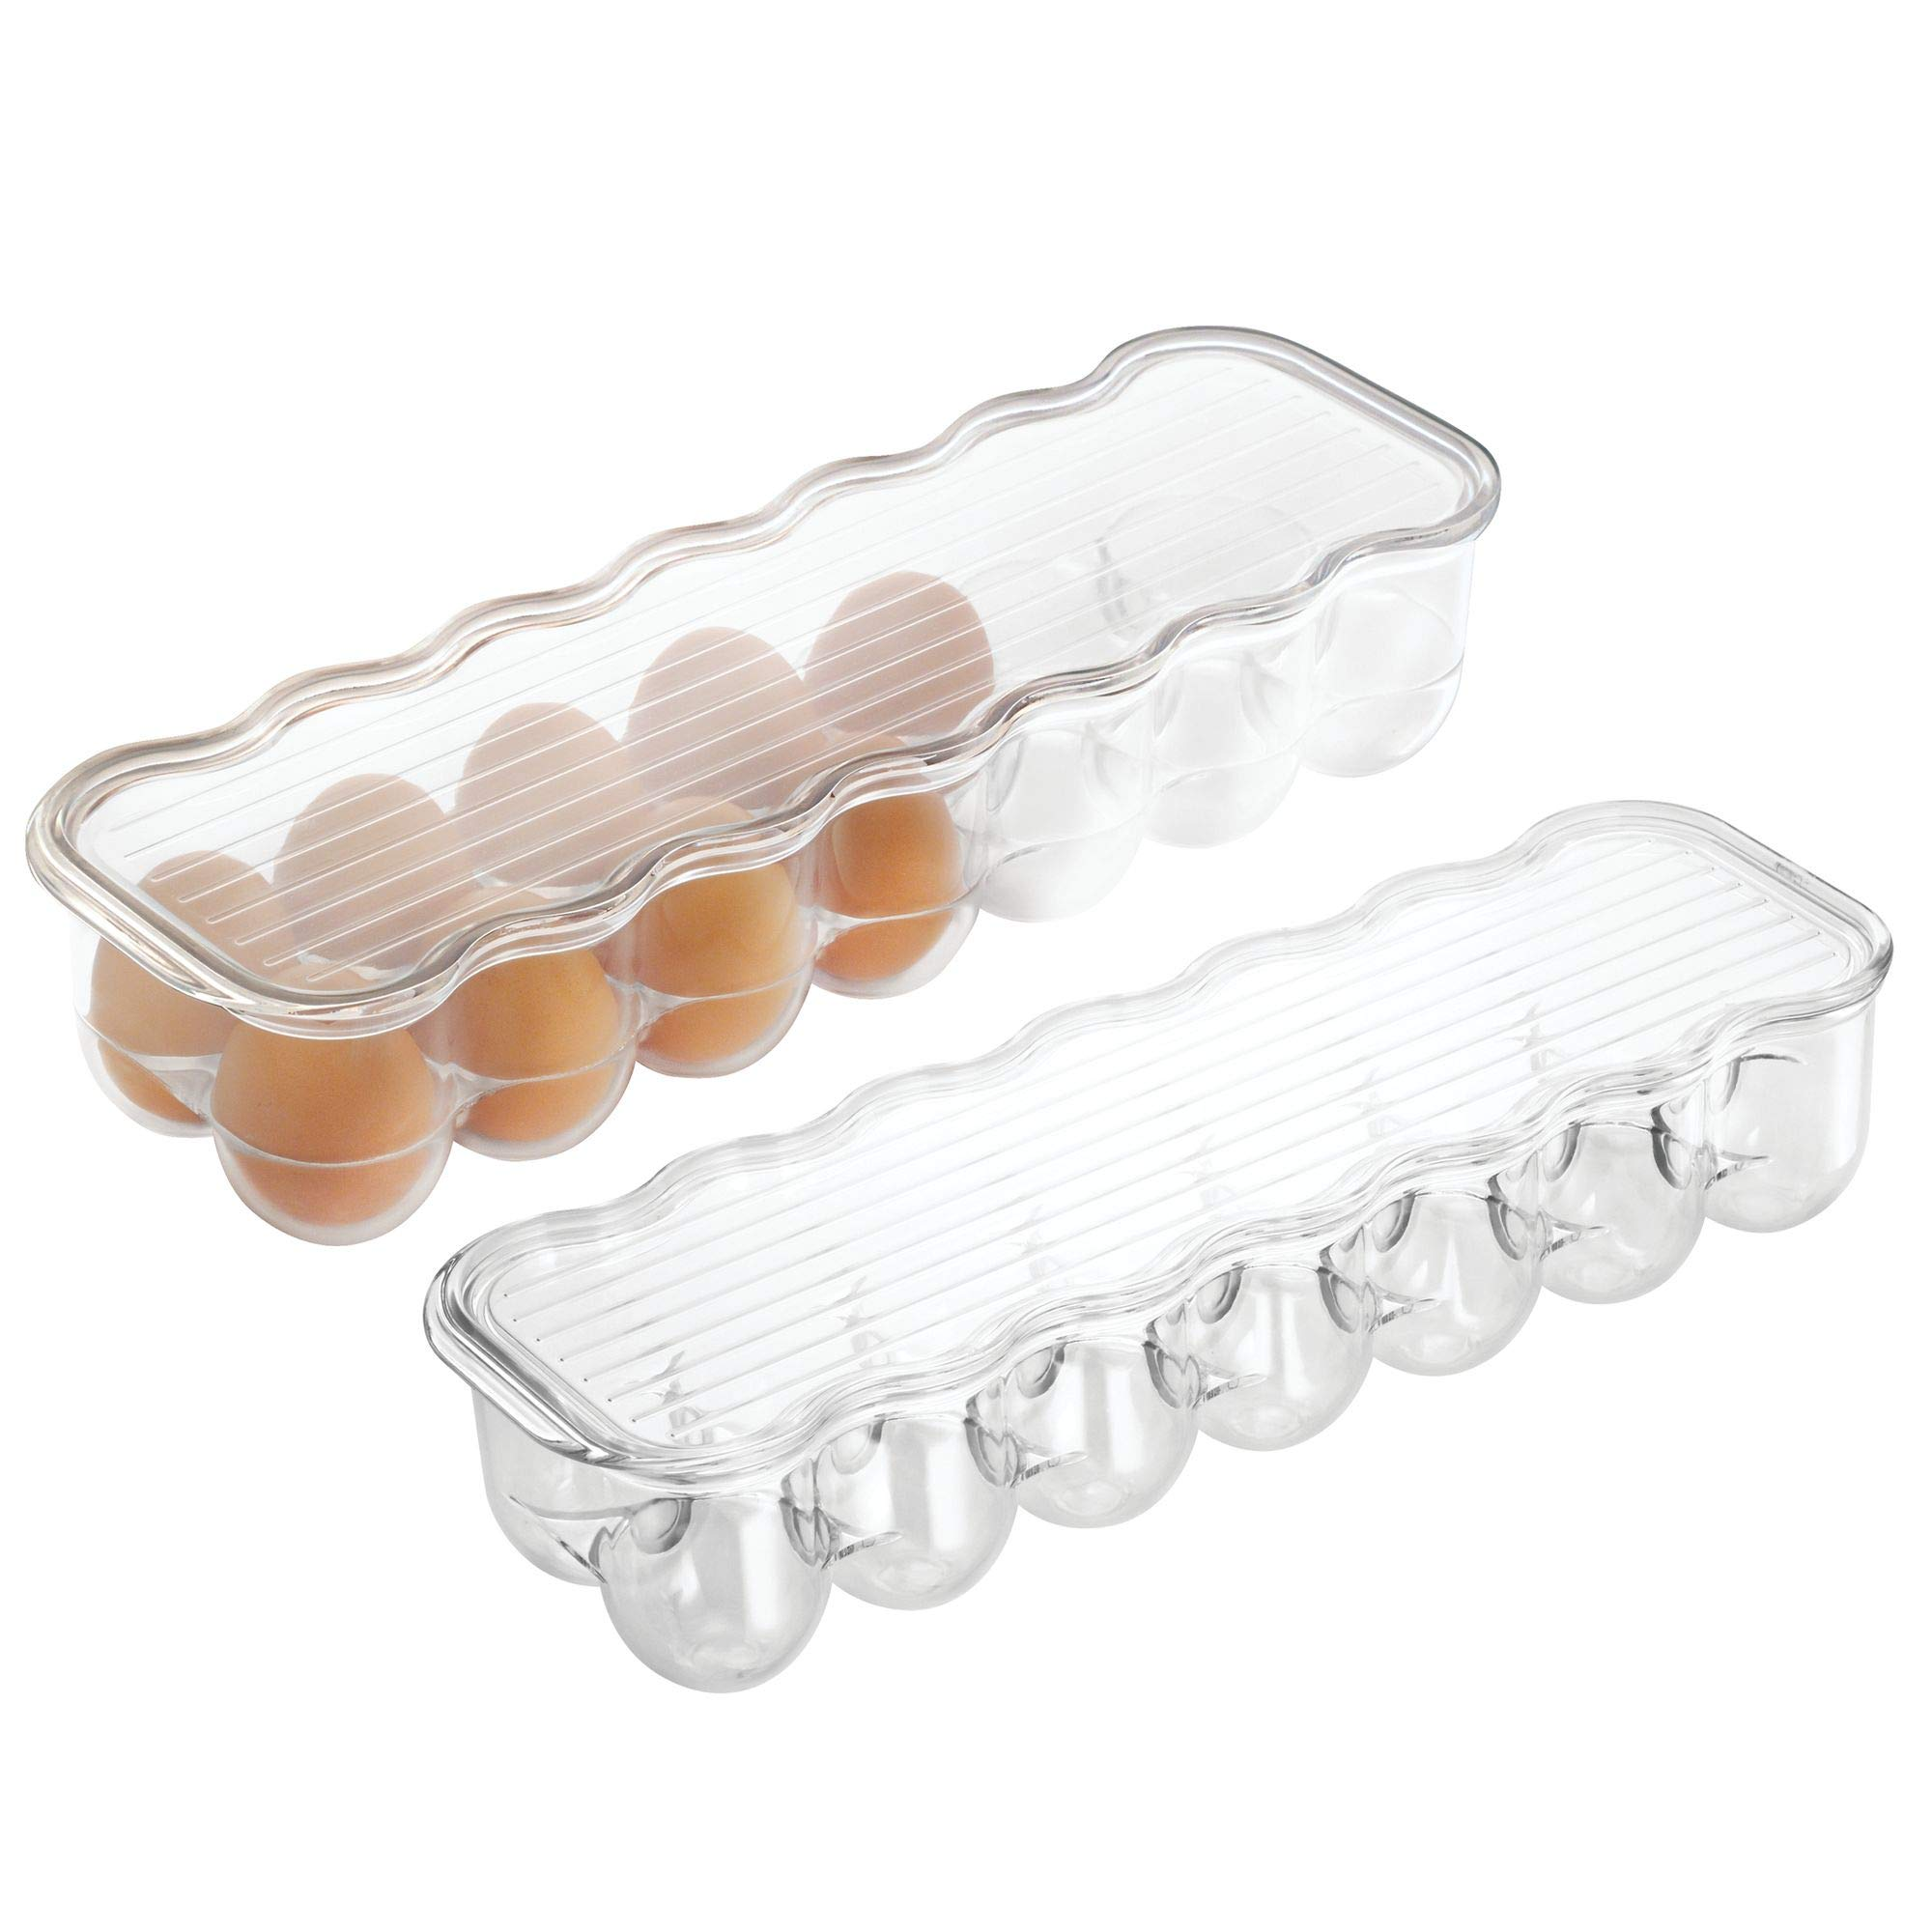 mDesign Stackable Plastic Covered Egg Tray Holder, Storage Container and Organizer for Refrigerator, Carrier Bin with Lid and Handle - Each Holds 14 Eggs - Pack of 2, Clear by mDesign (Image #1)